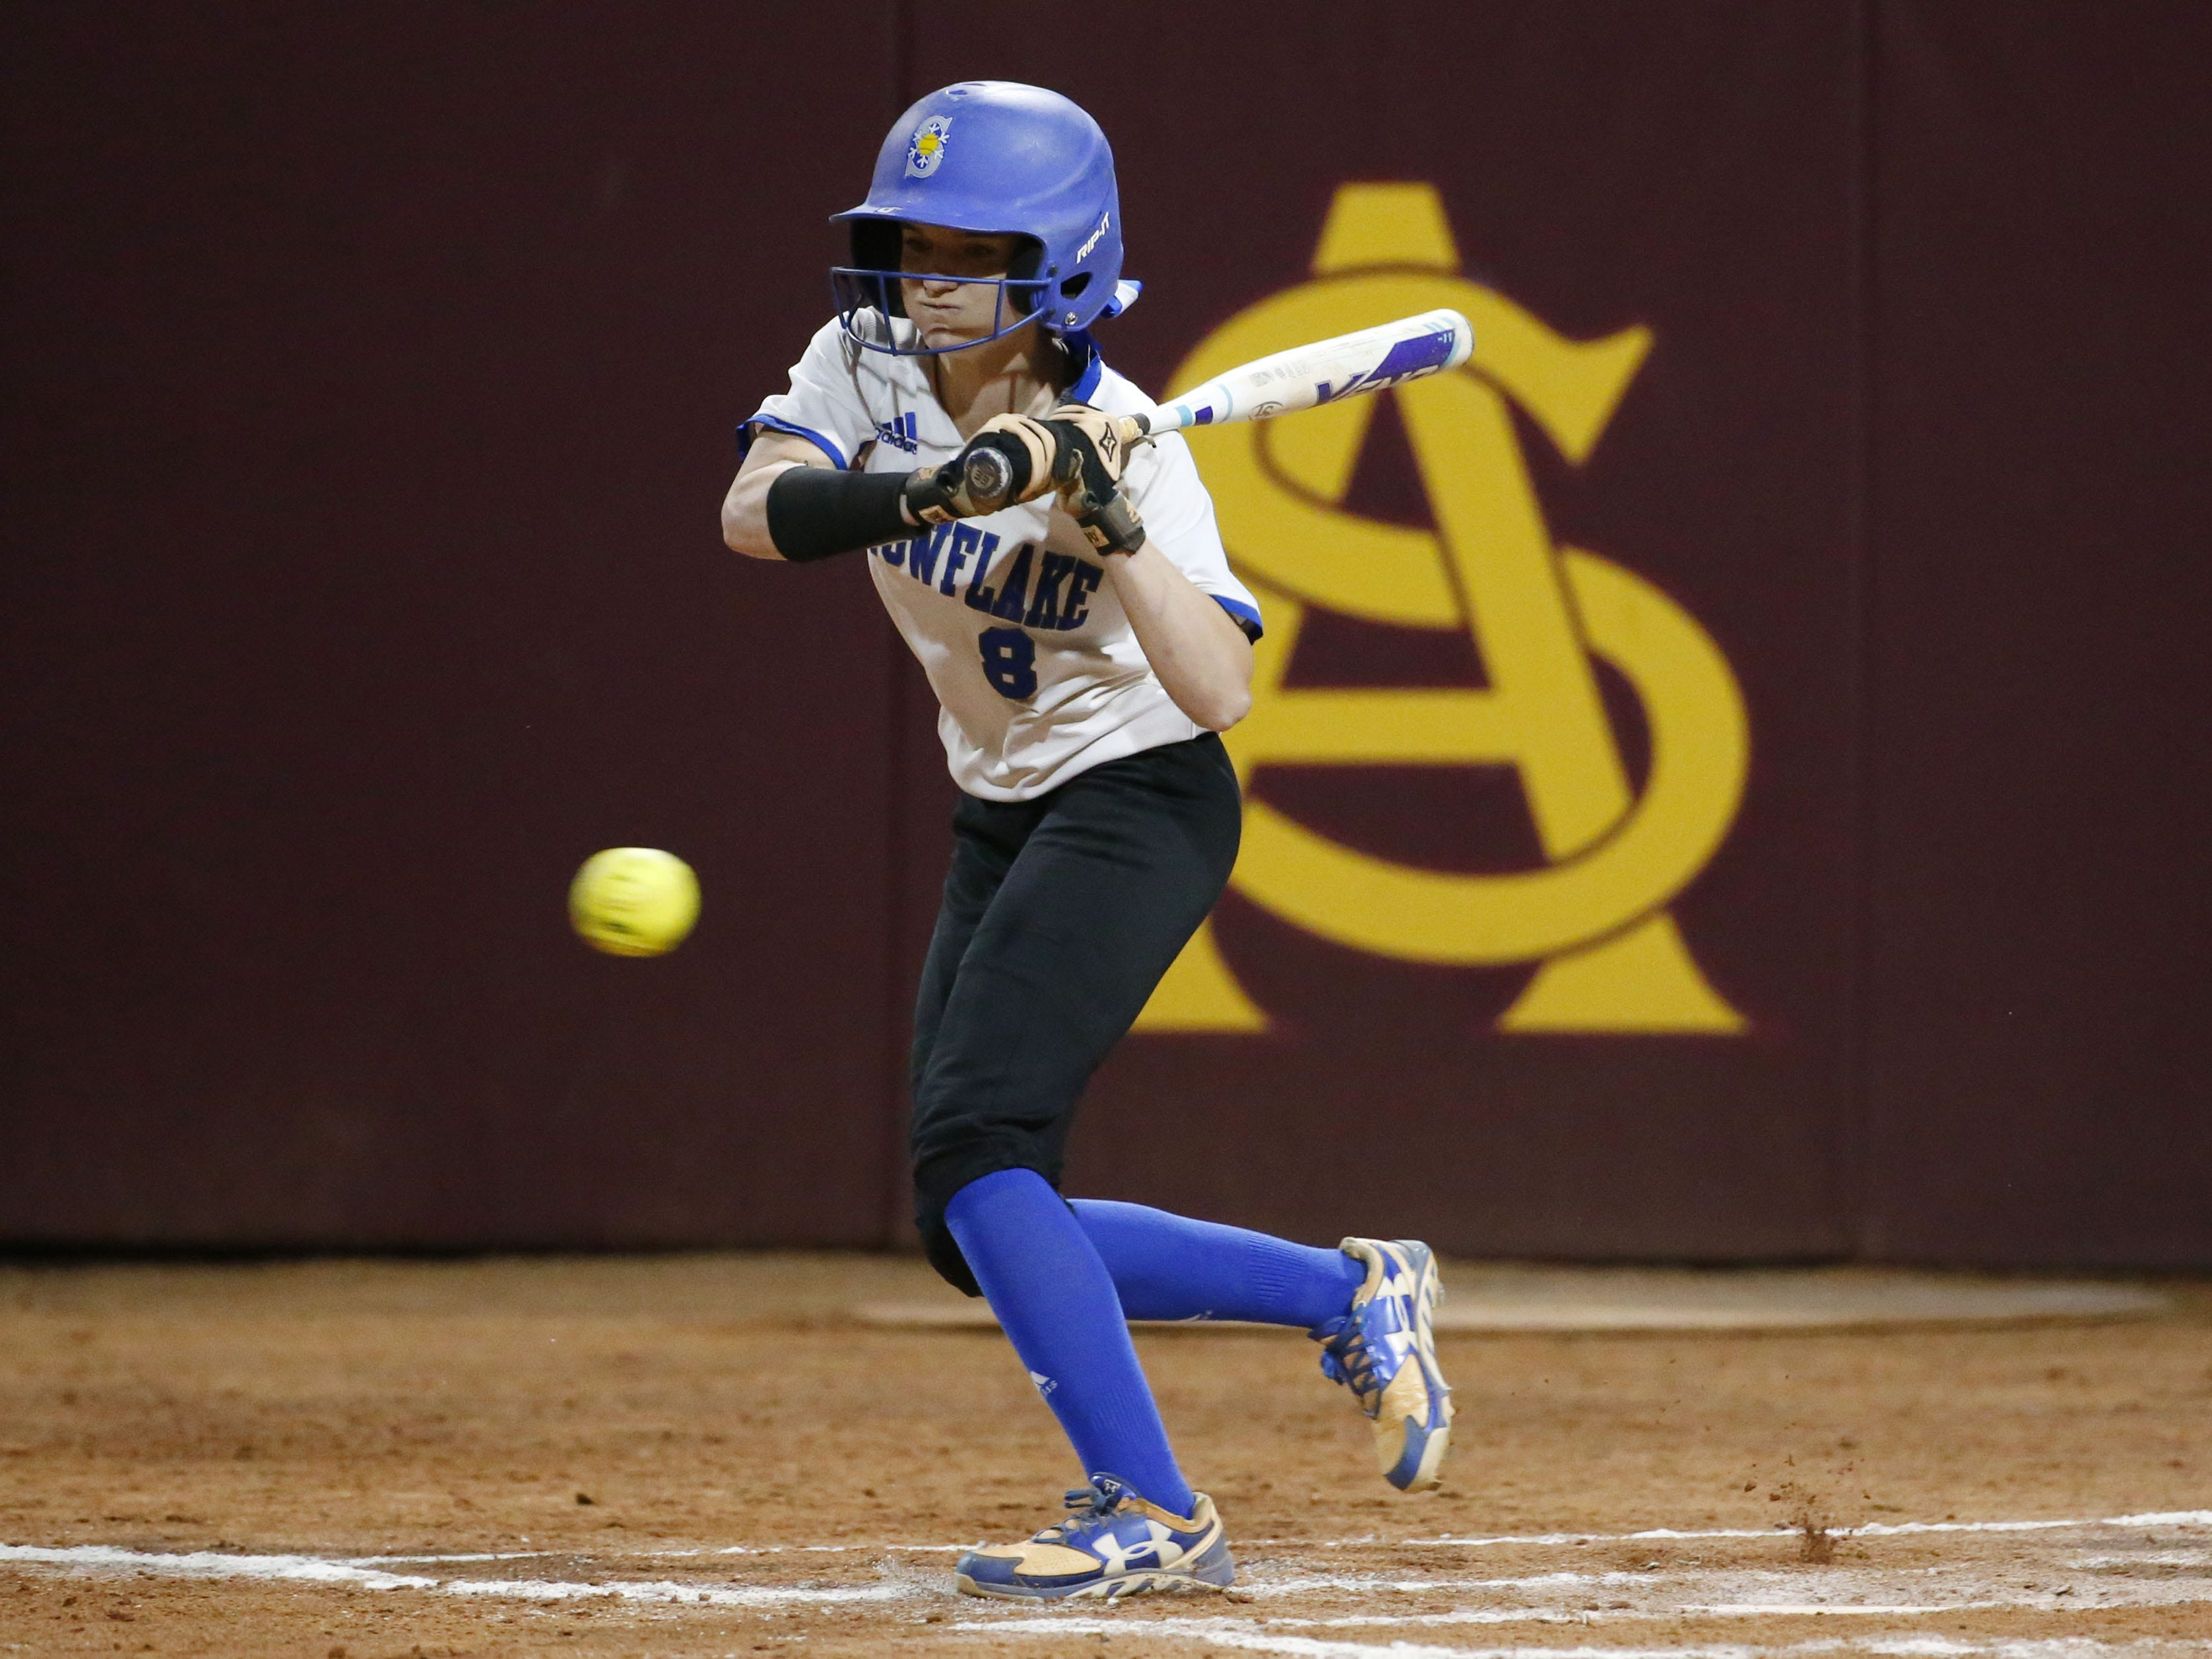 Snowflake center fielder Kaylee Thomas (8) watches strike three against Sabino during the 3A softball state championship game in Tempe May 6, 2019.